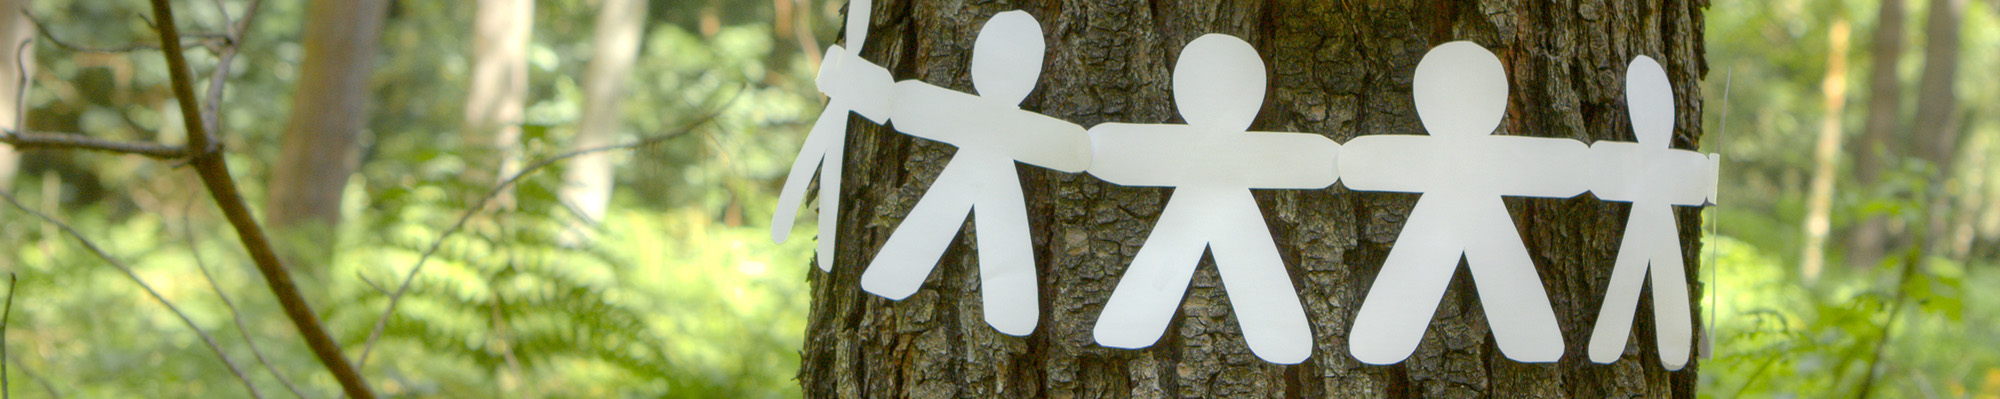 Paper men on tree trunk in the forest